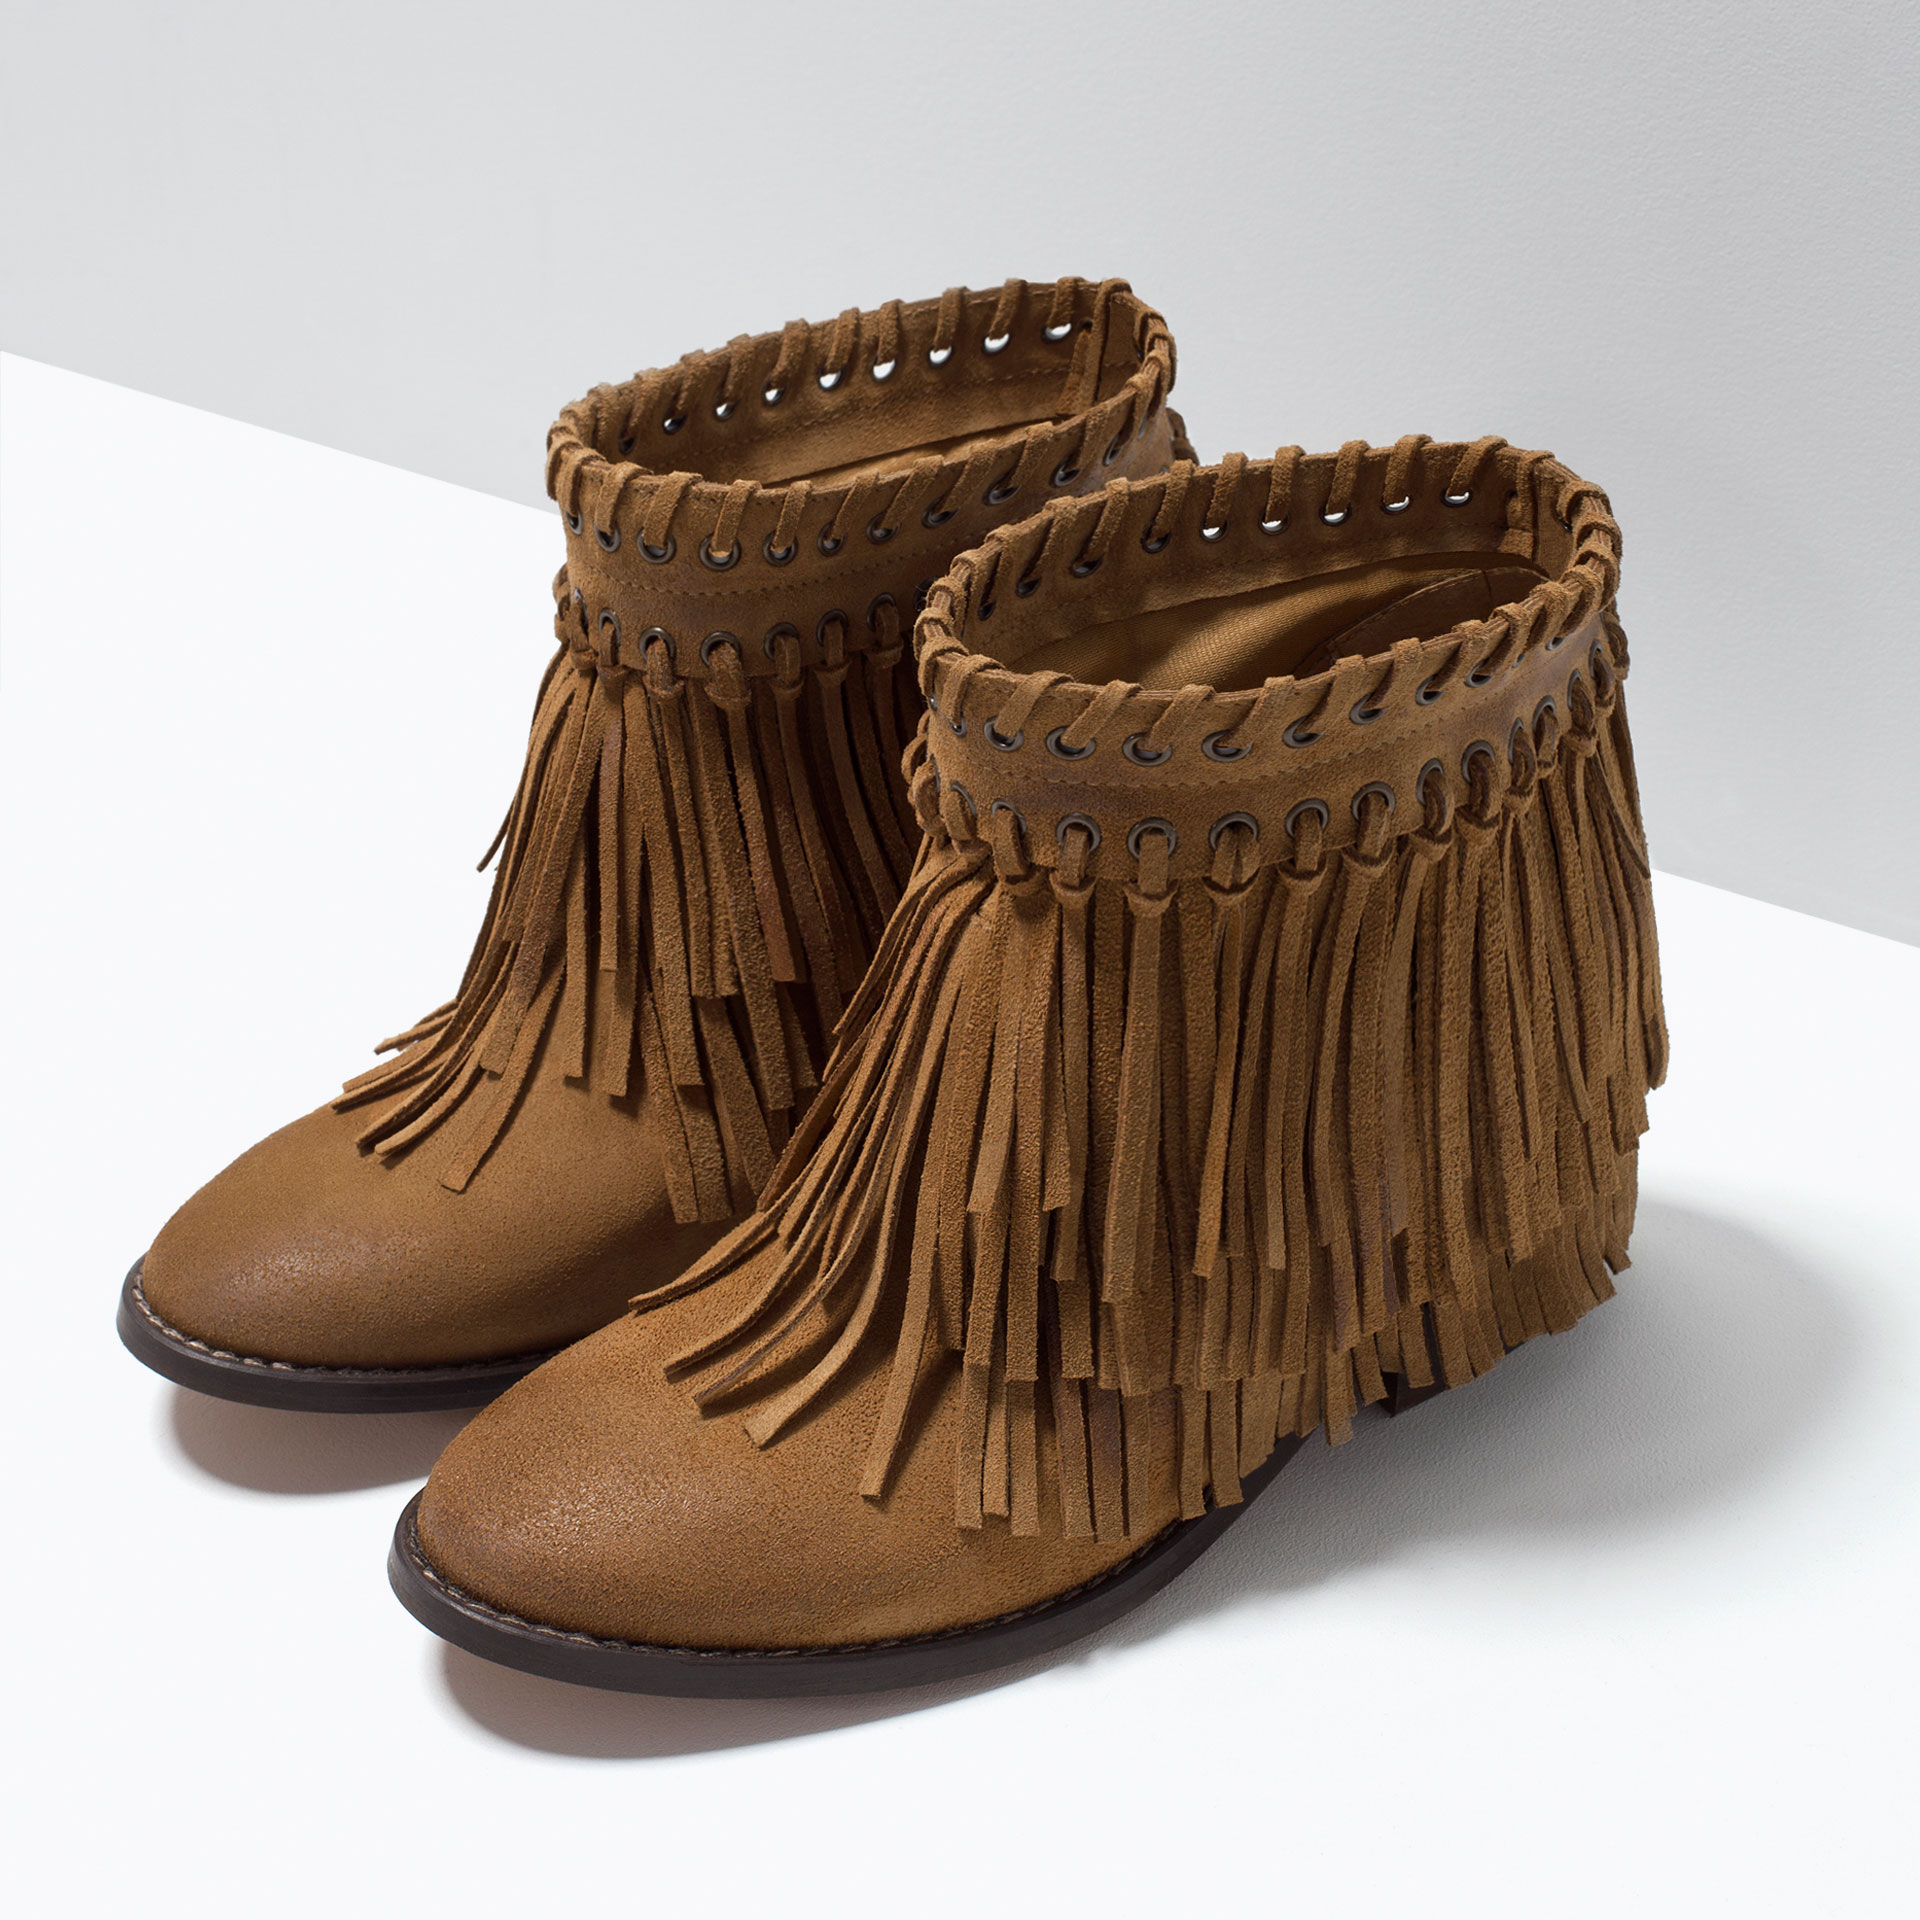 Zara Suede Fringed Ankle Boots in Brown | Lyst